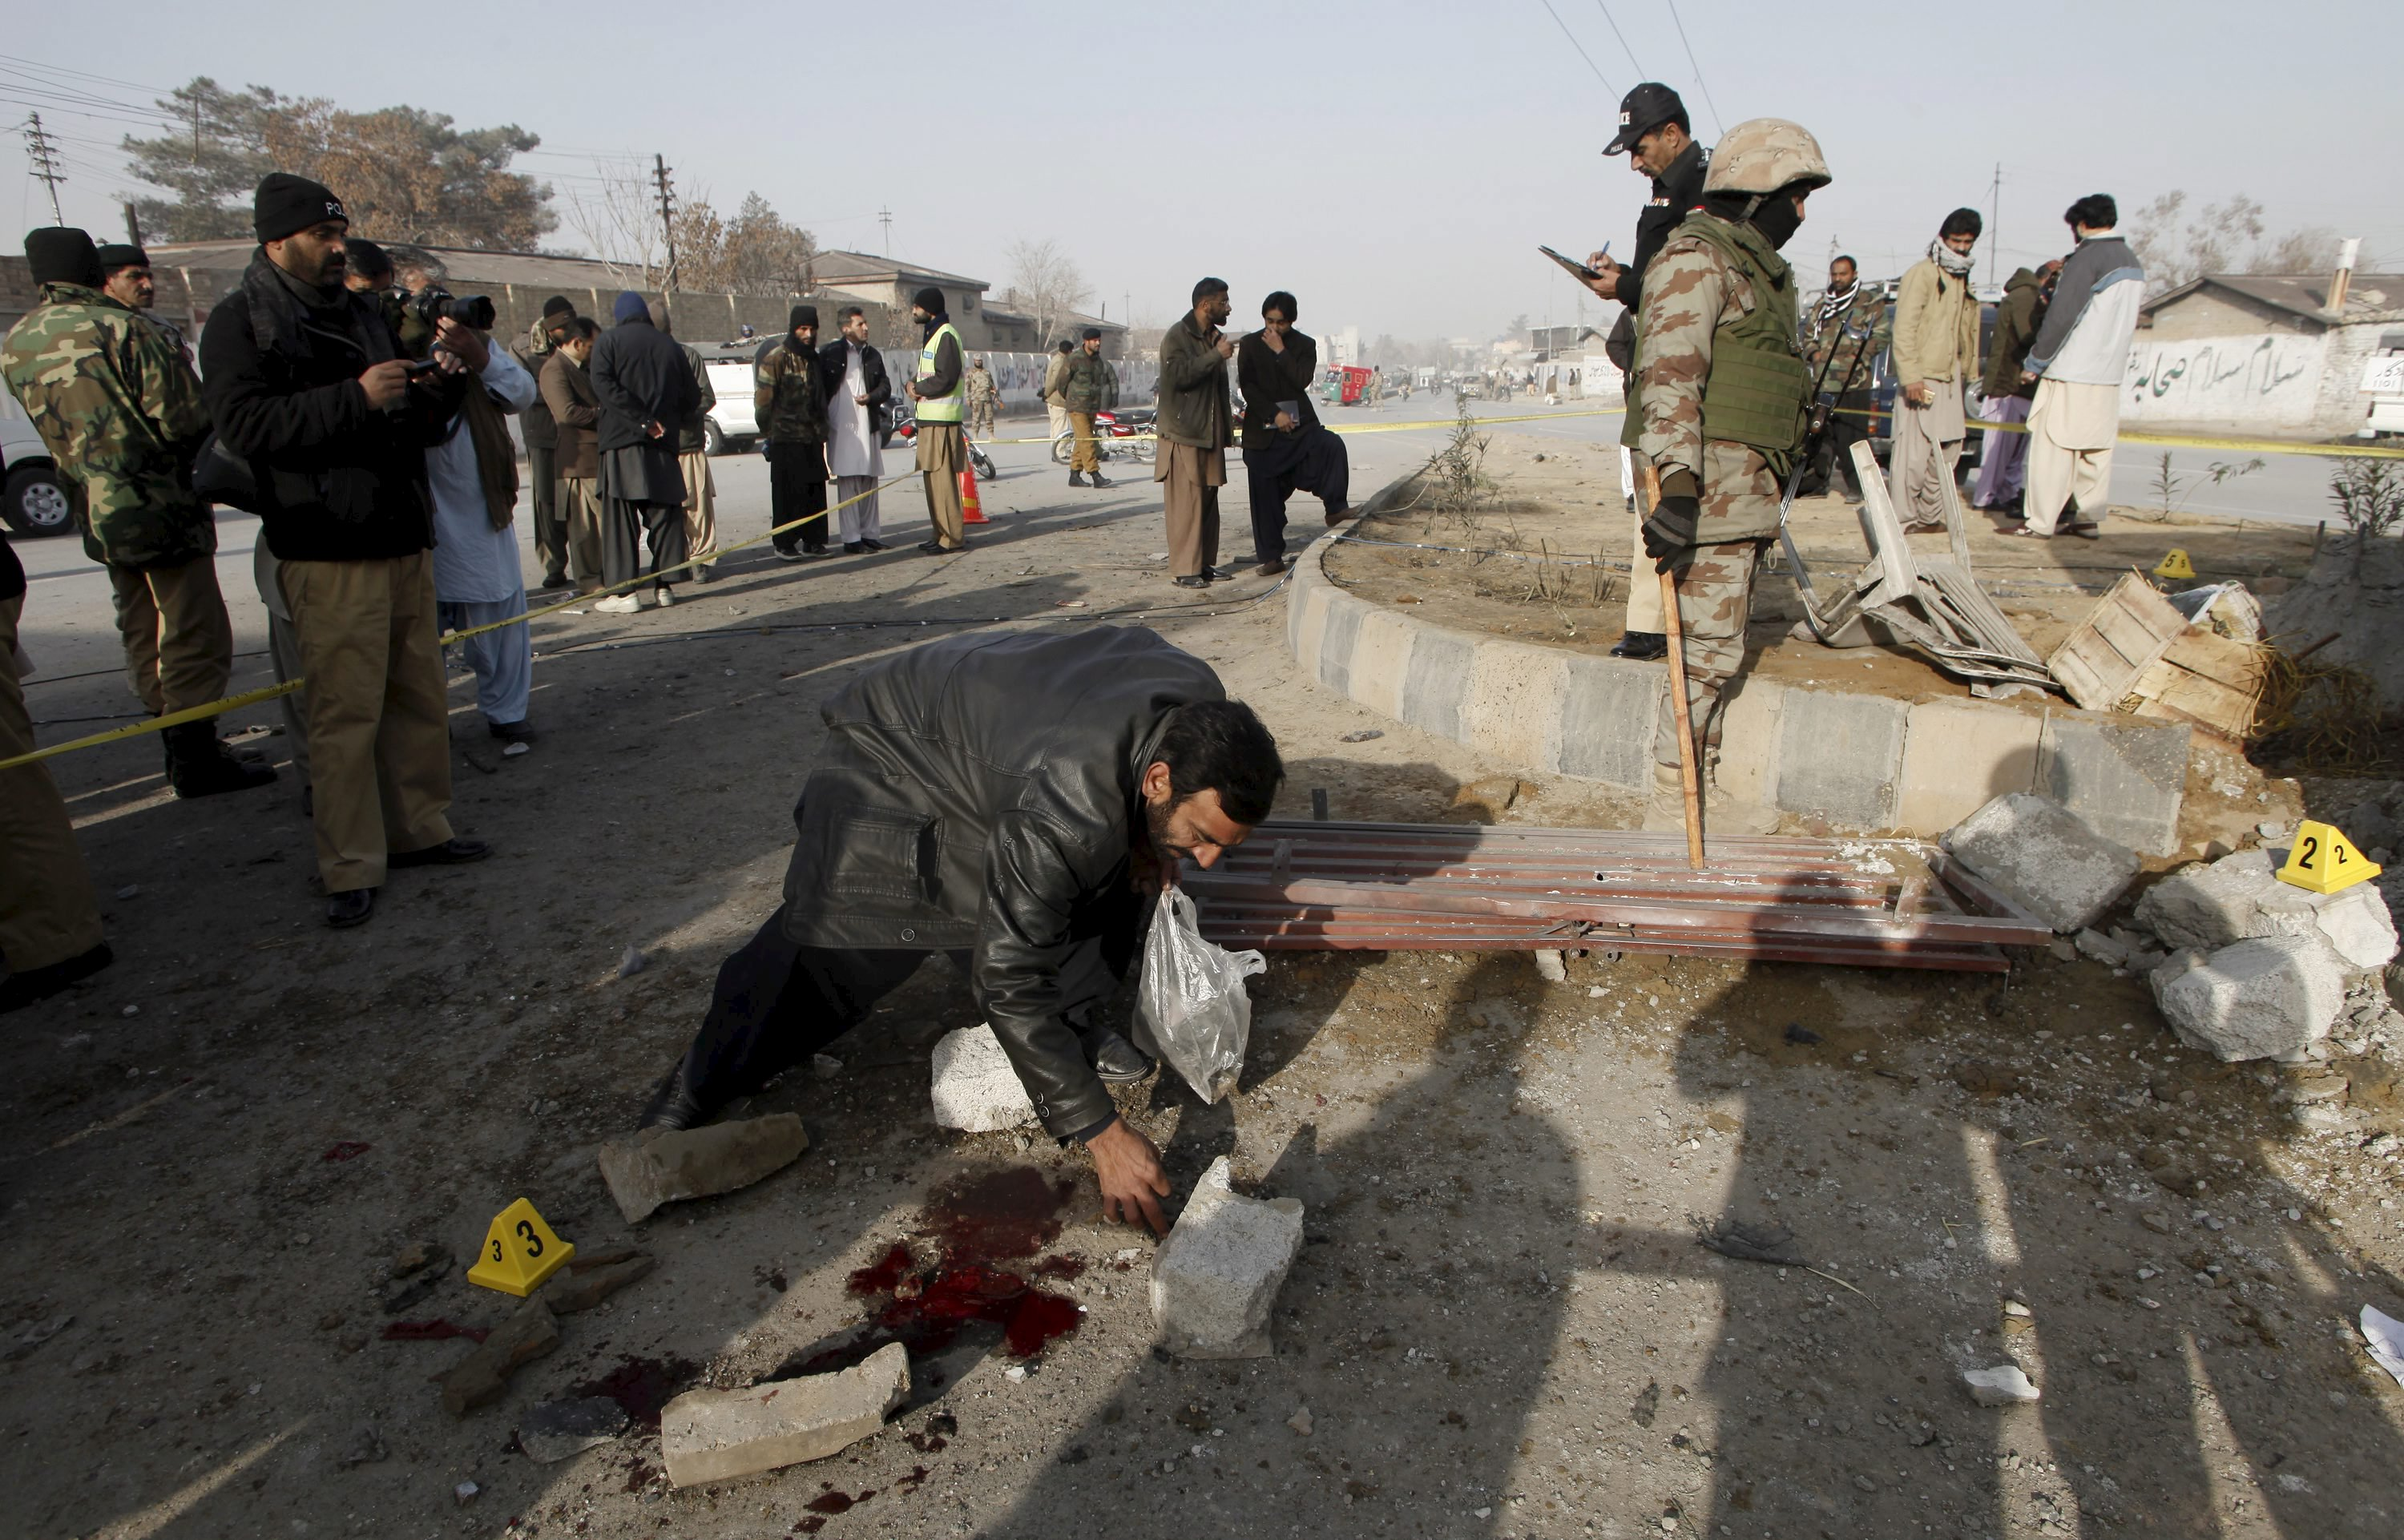 A security official collects evidence at a bomb blast site near a checkpost in Quetta, Pakistan, December 12, 2015. Photo: Reuters